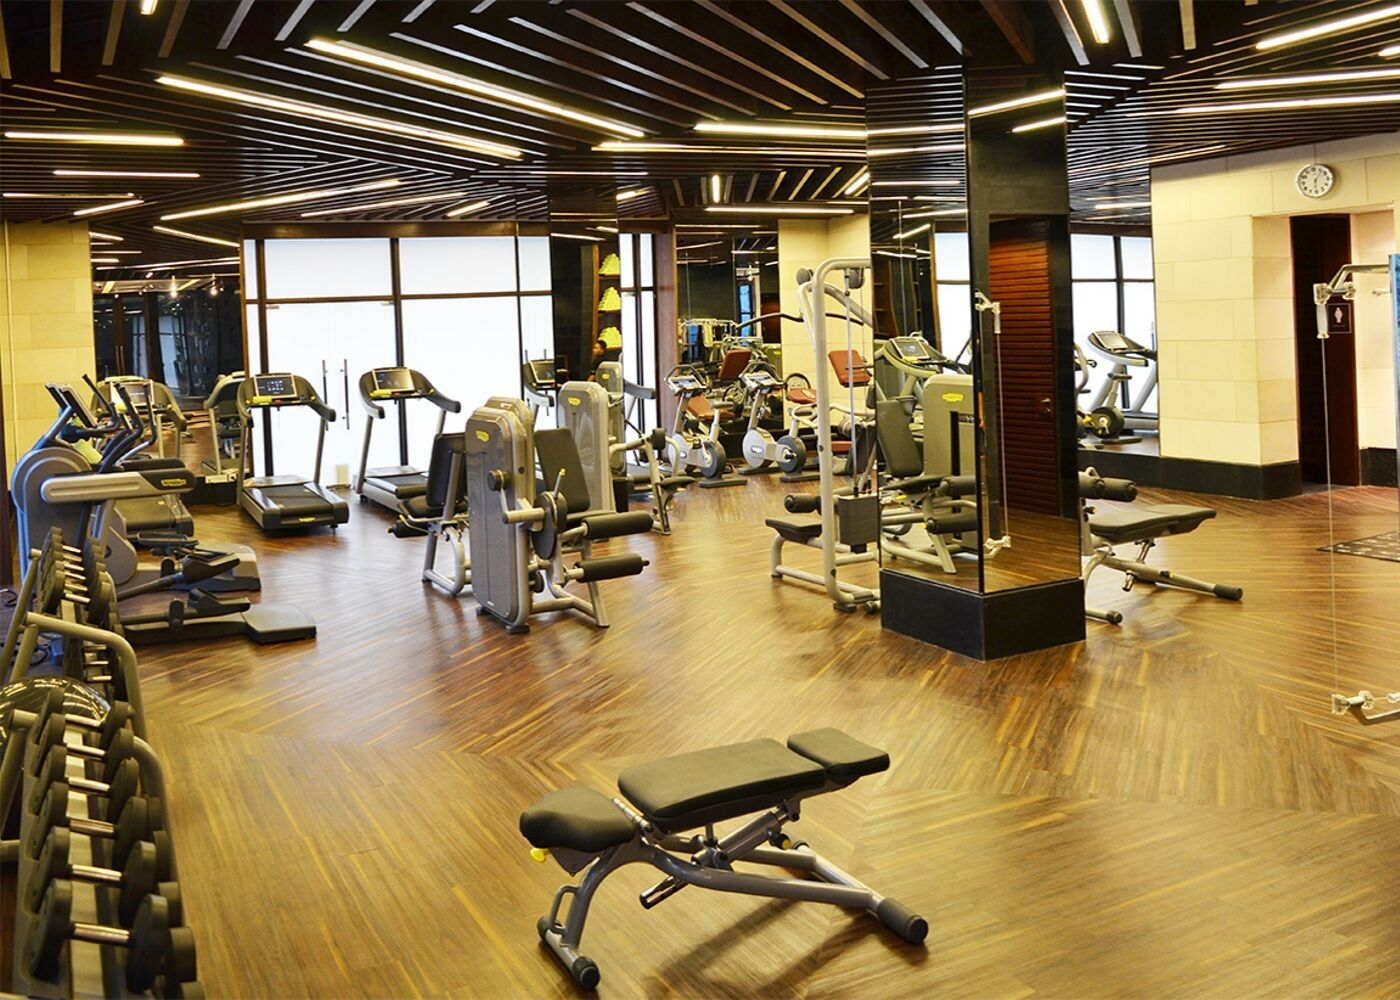 Fitness equipment at SoFit at Sofitel Bali Nusa Dua Beach Resort